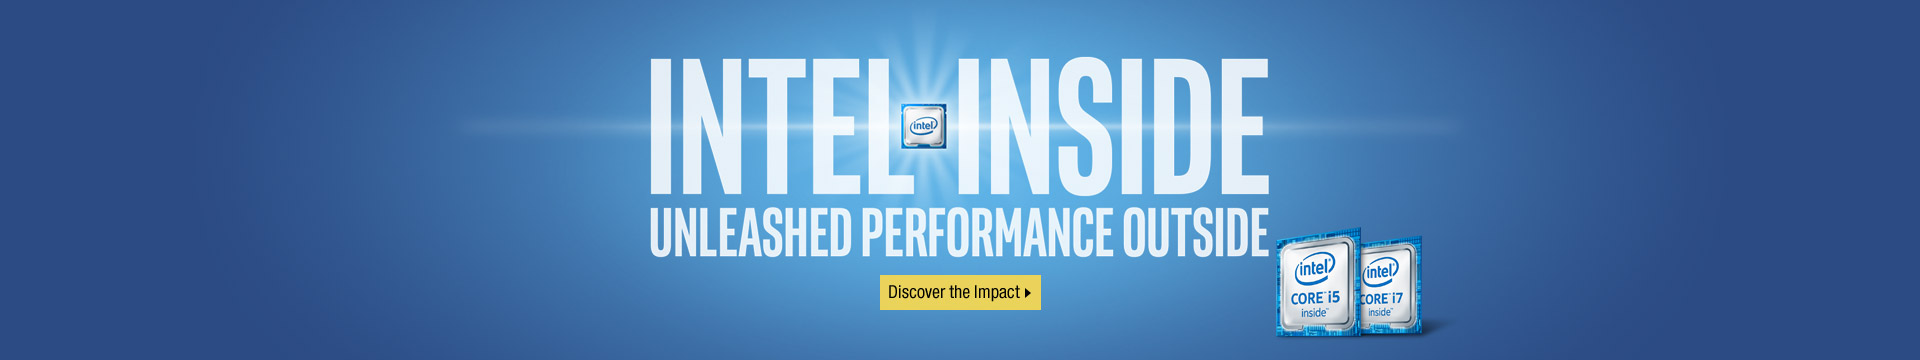 Intel Inside unleashed performance outside